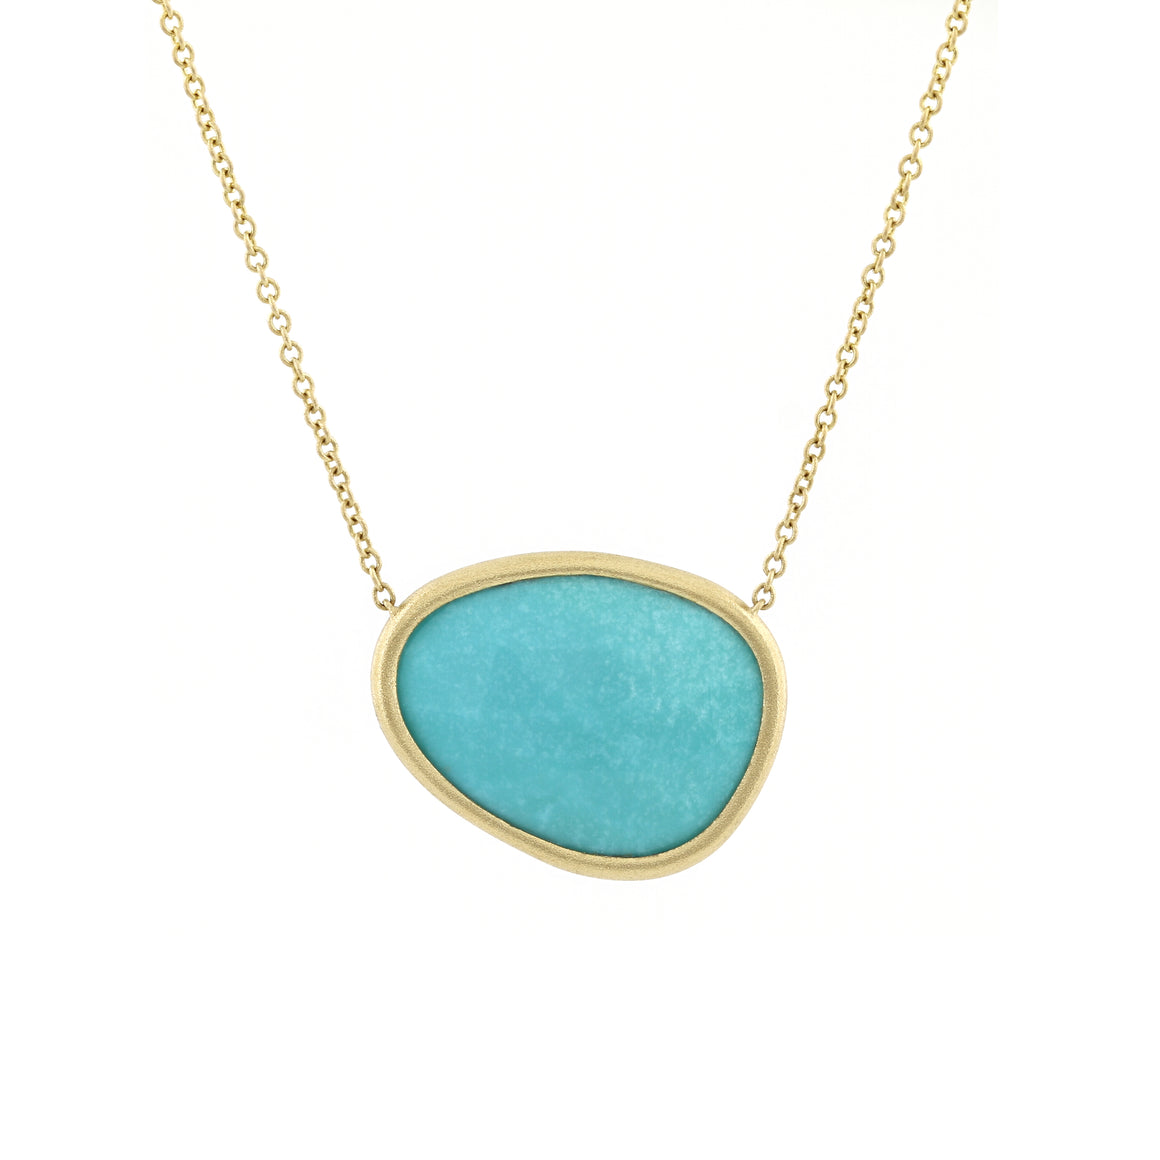 Piedras Necklace with Turquoise in Yellow Gold